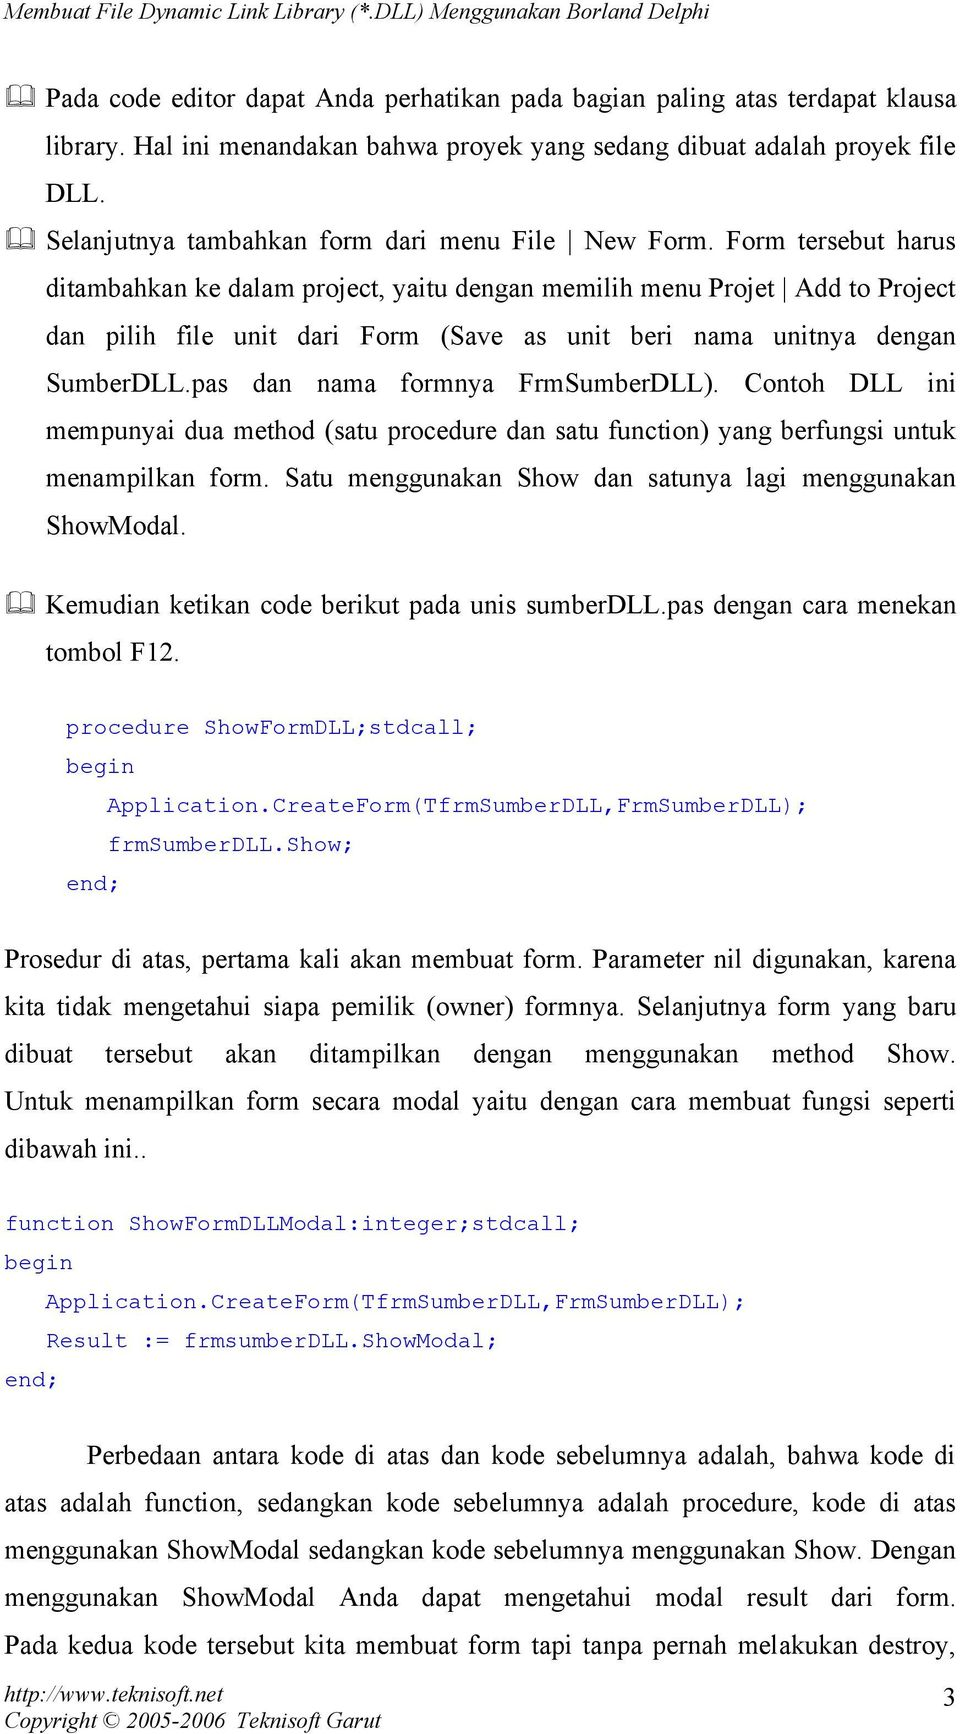 Form tersebut harus ditambahkan ke dalam project, yaitu dengan memilih menu Projet Add to Project dan pilih file unit dari Form (Save as unit beri nama unitnya dengan SumberDLL.